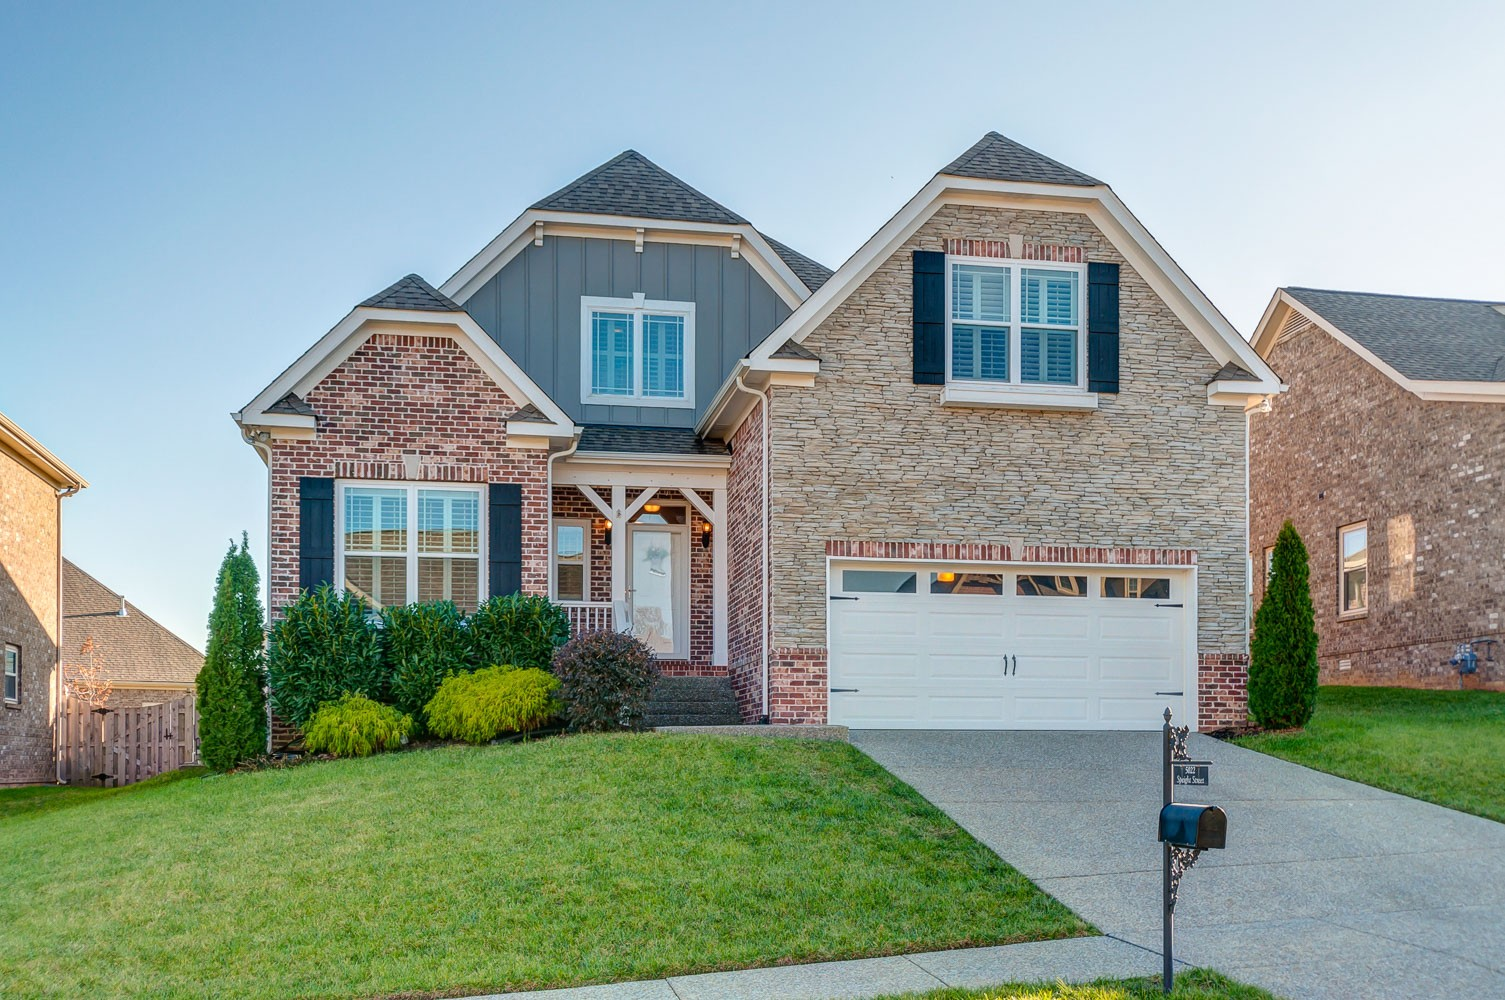 5022 Speight St, Spring Hill, TN 37174 - Spring Hill, TN real estate listing